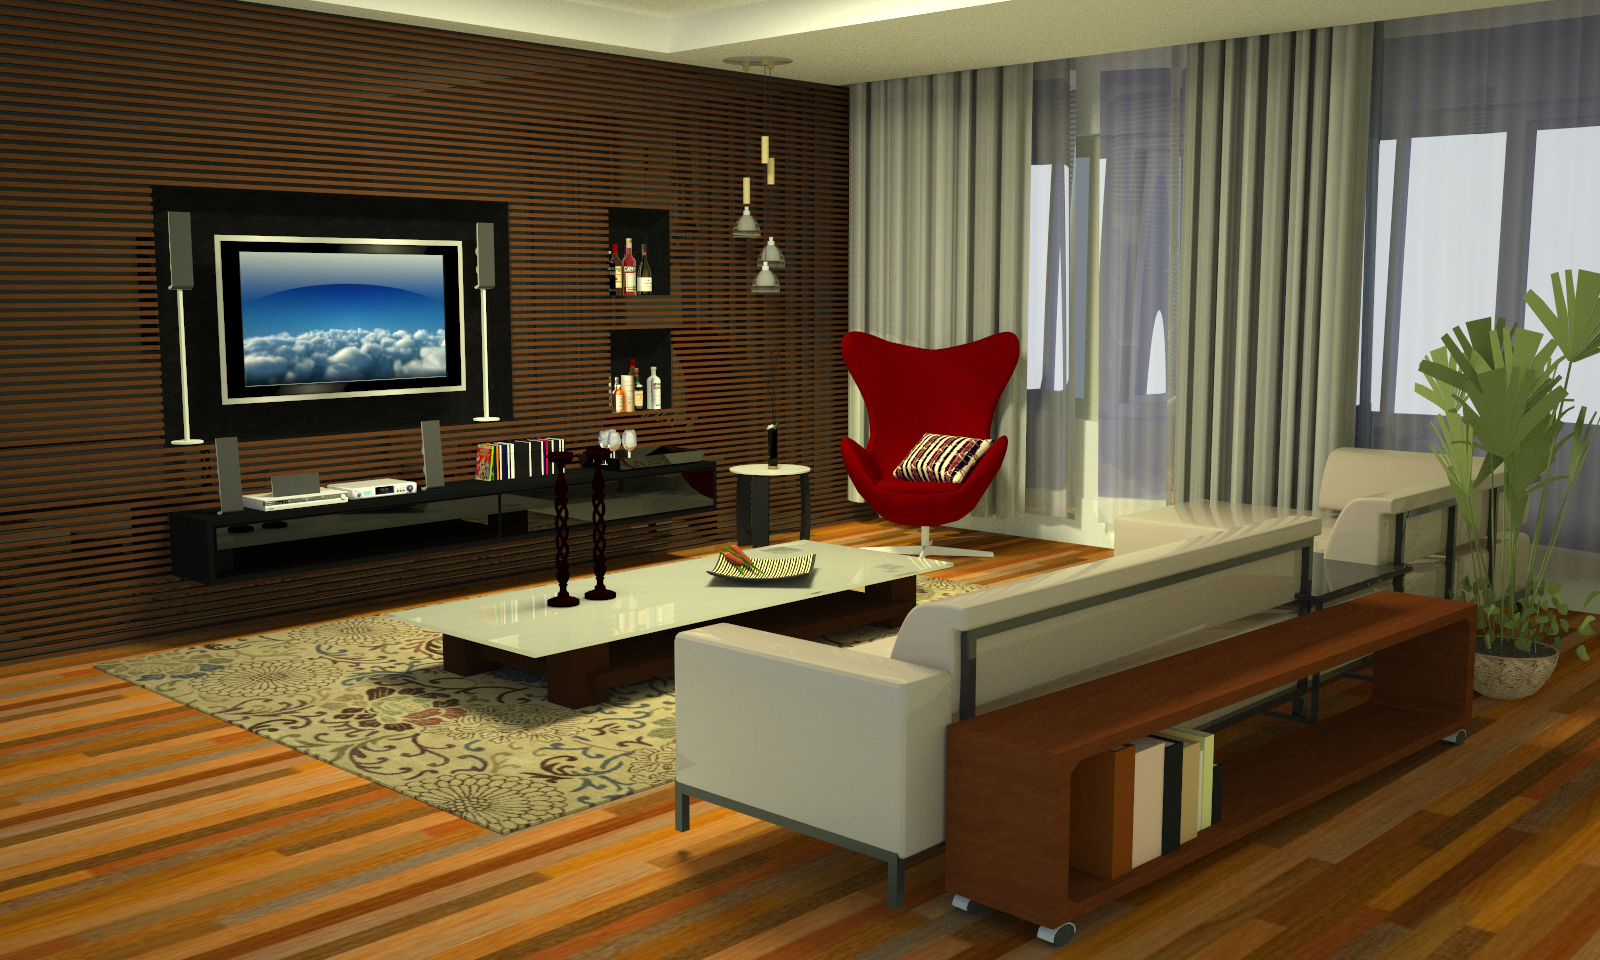 Designer Sala Interior Design Sala Fancy Inspiration Ideas Tv Wall  -> Sala De Tv Com Almofadas No Chao